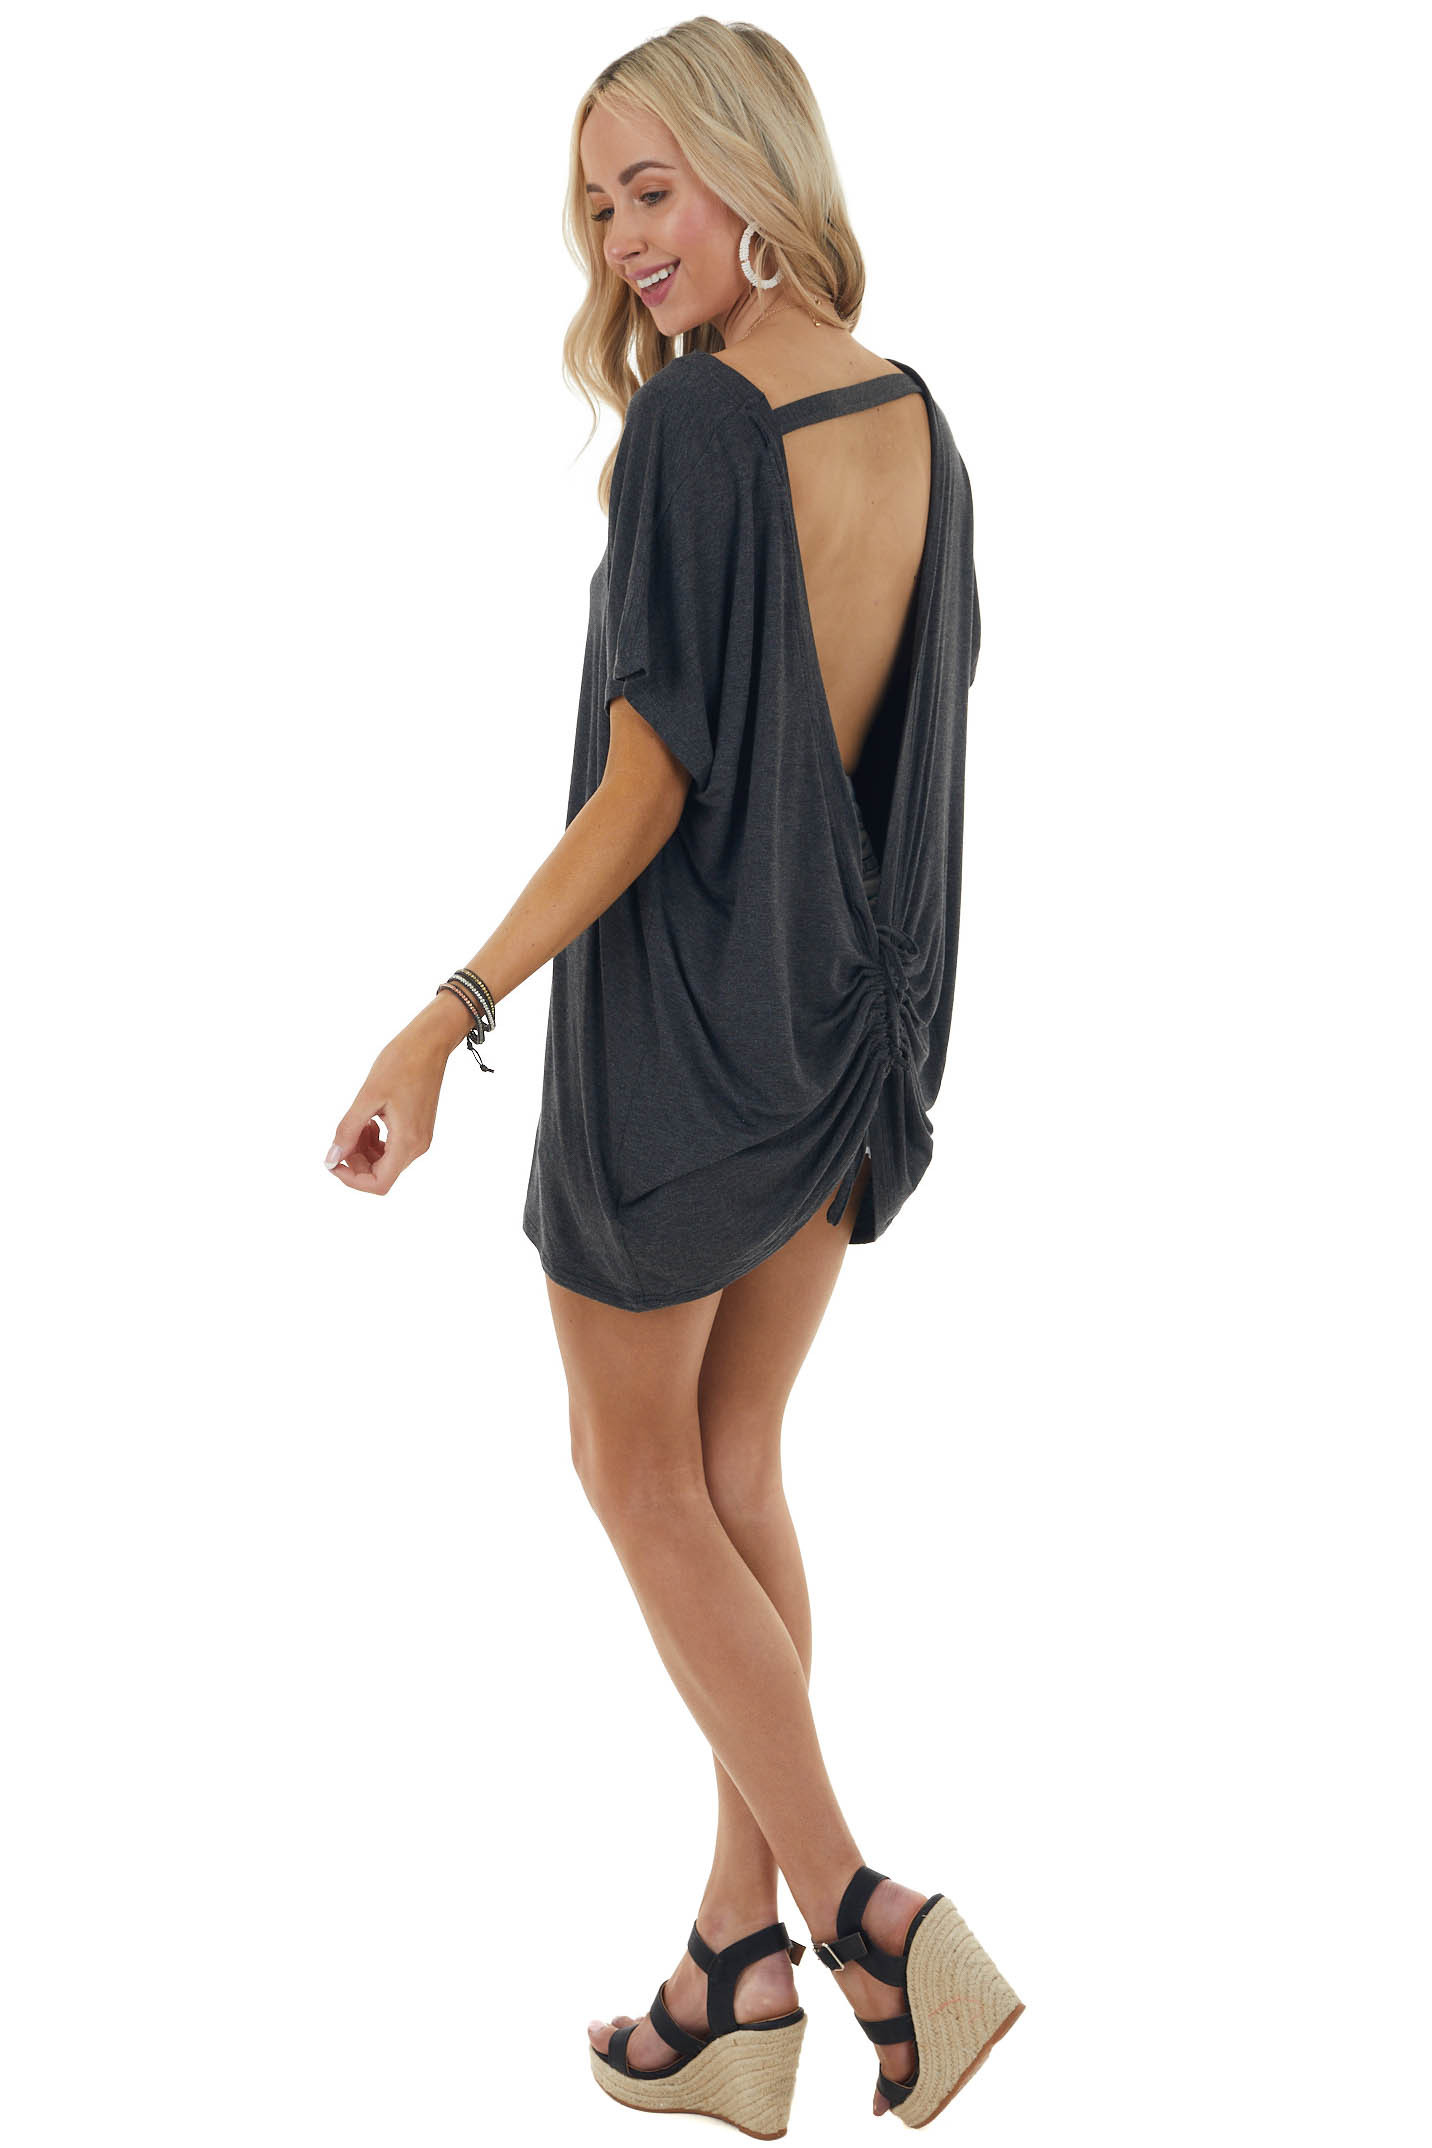 Heathered Charcoal Cut Out Back Knit Top with Ruching Detail